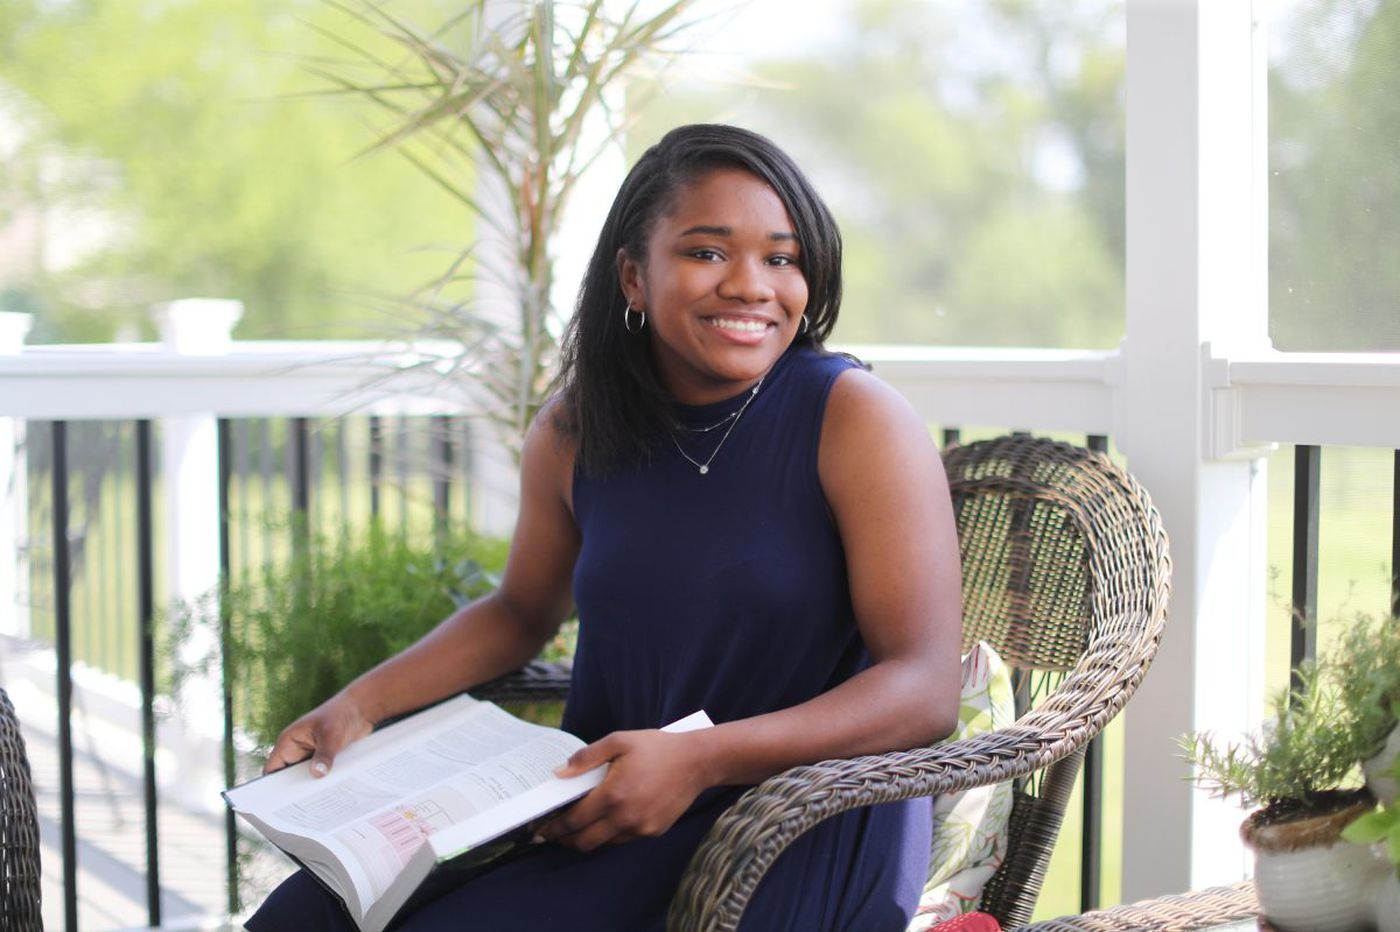 These Oxford Area students graduated college before graduating high school